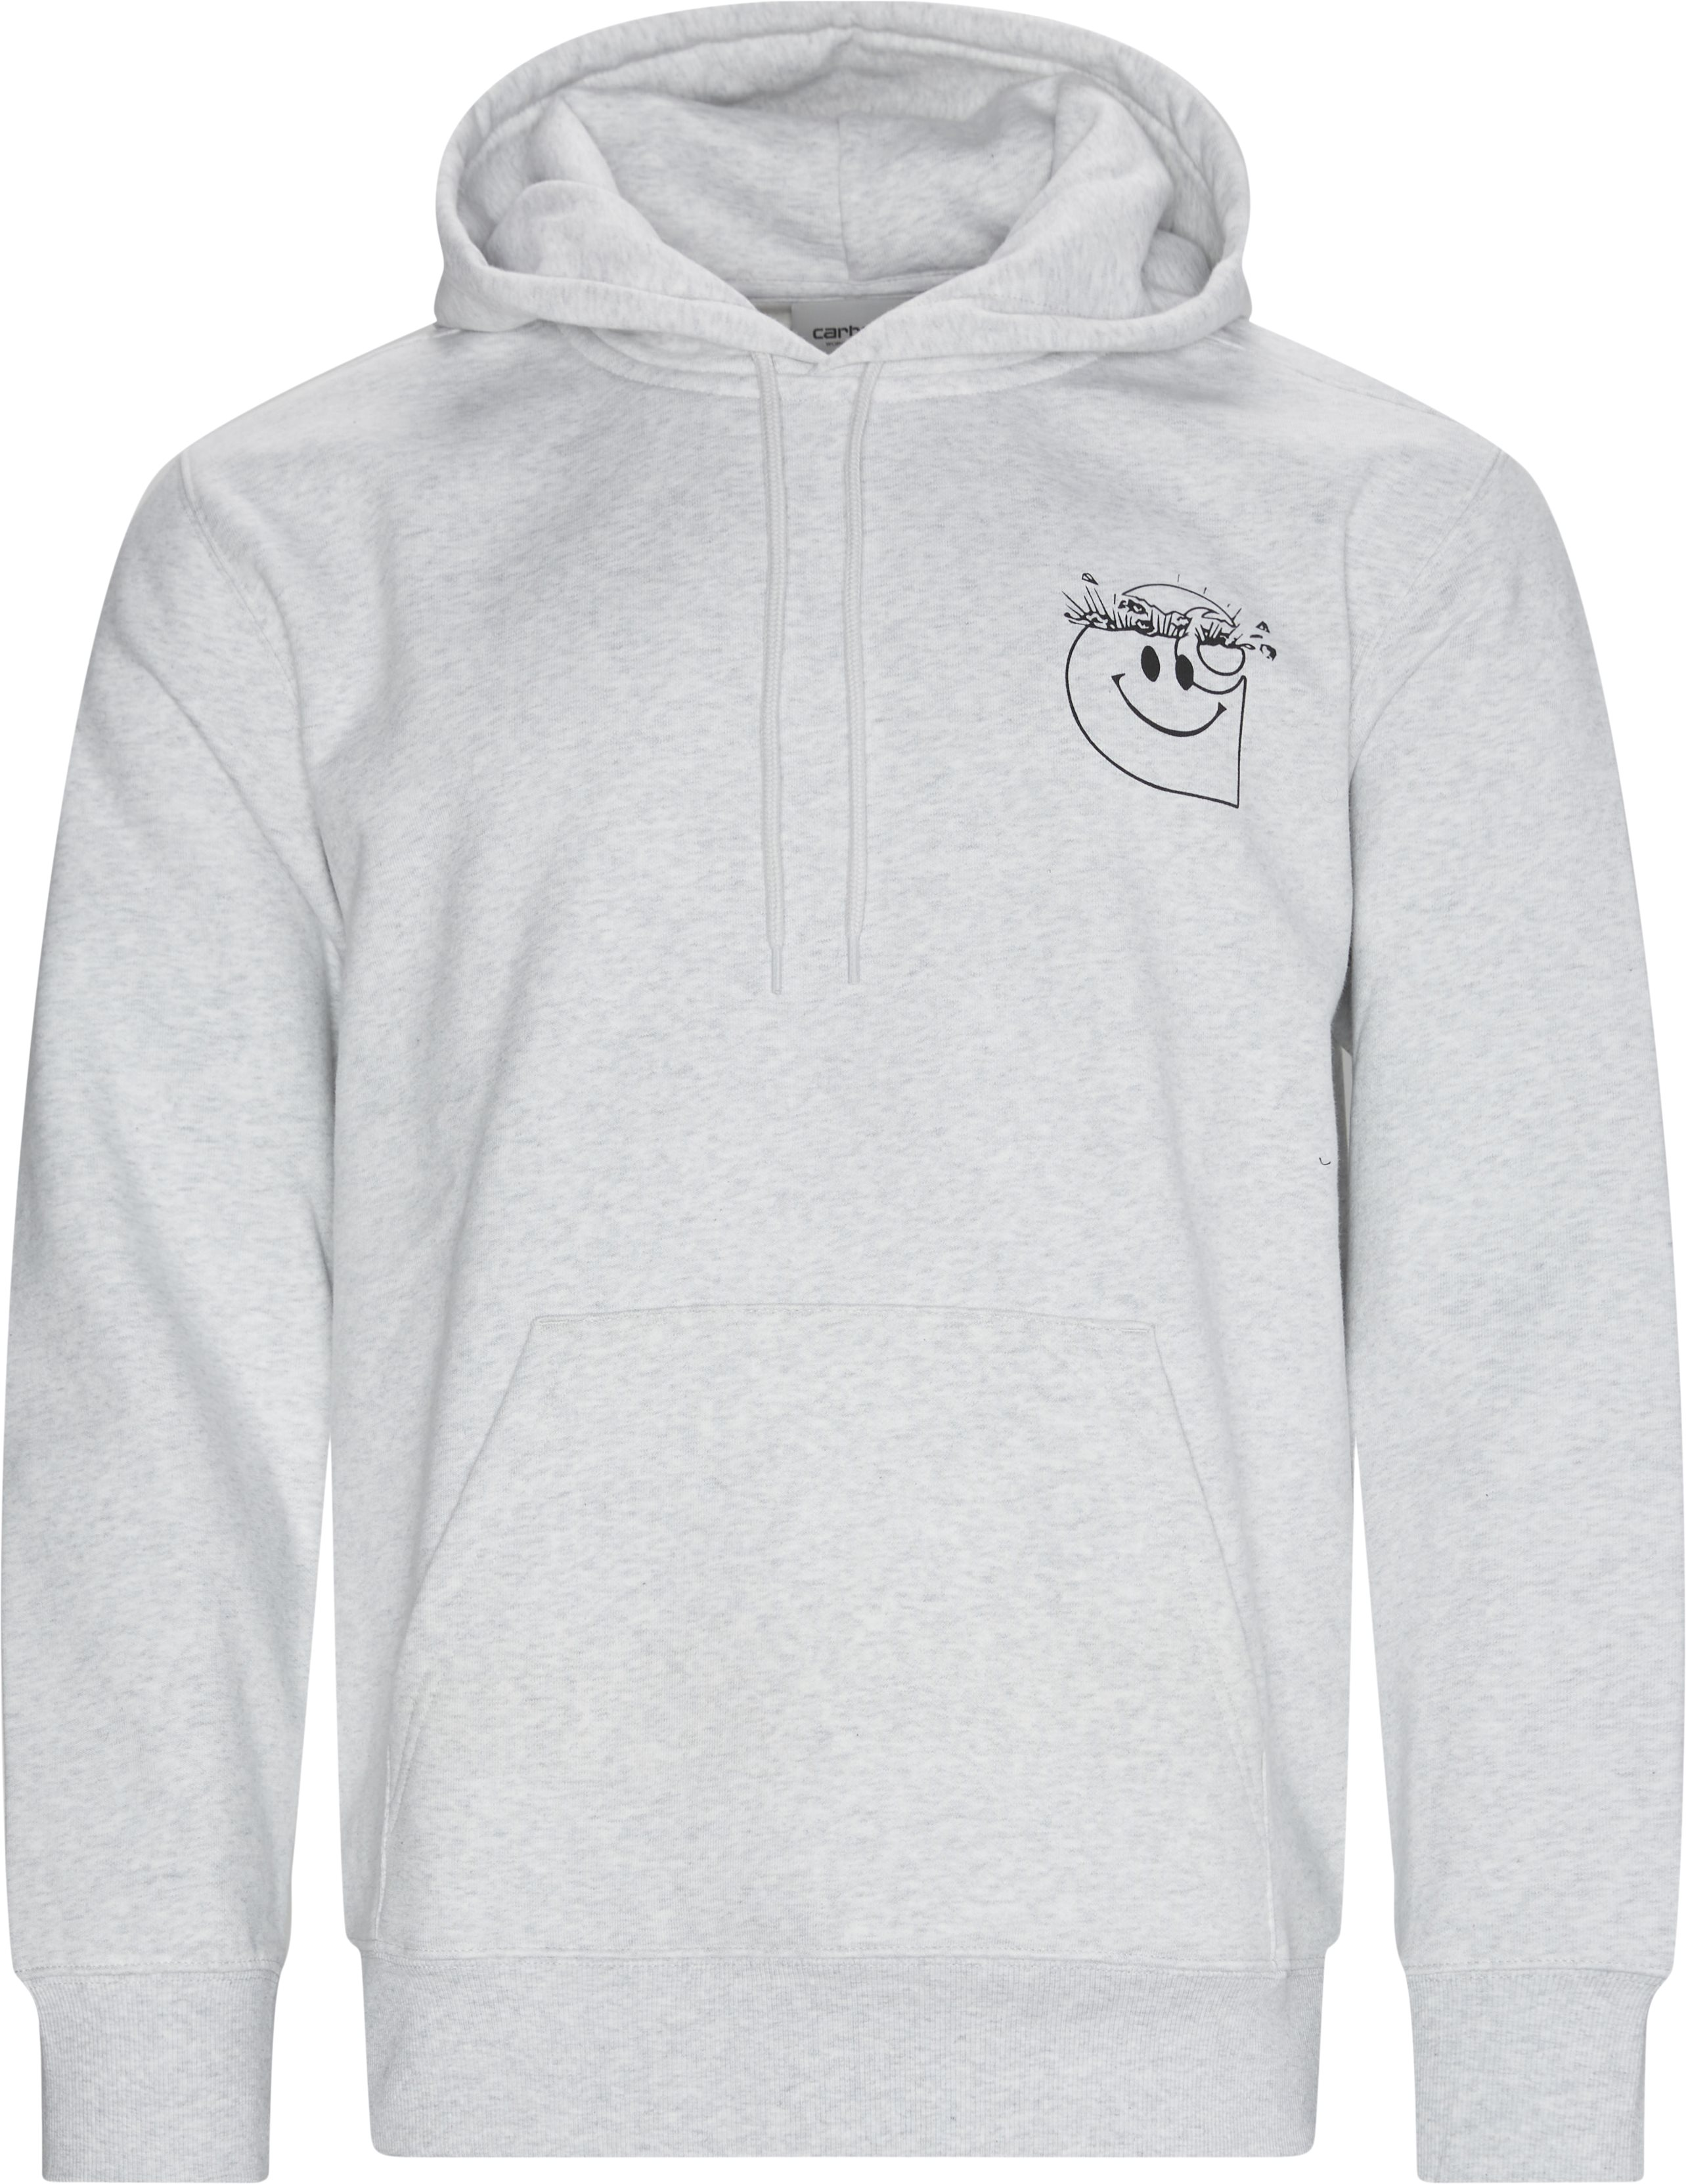 Hooded Smiley Sweatshirt - Sweatshirts - Regular fit - Grå